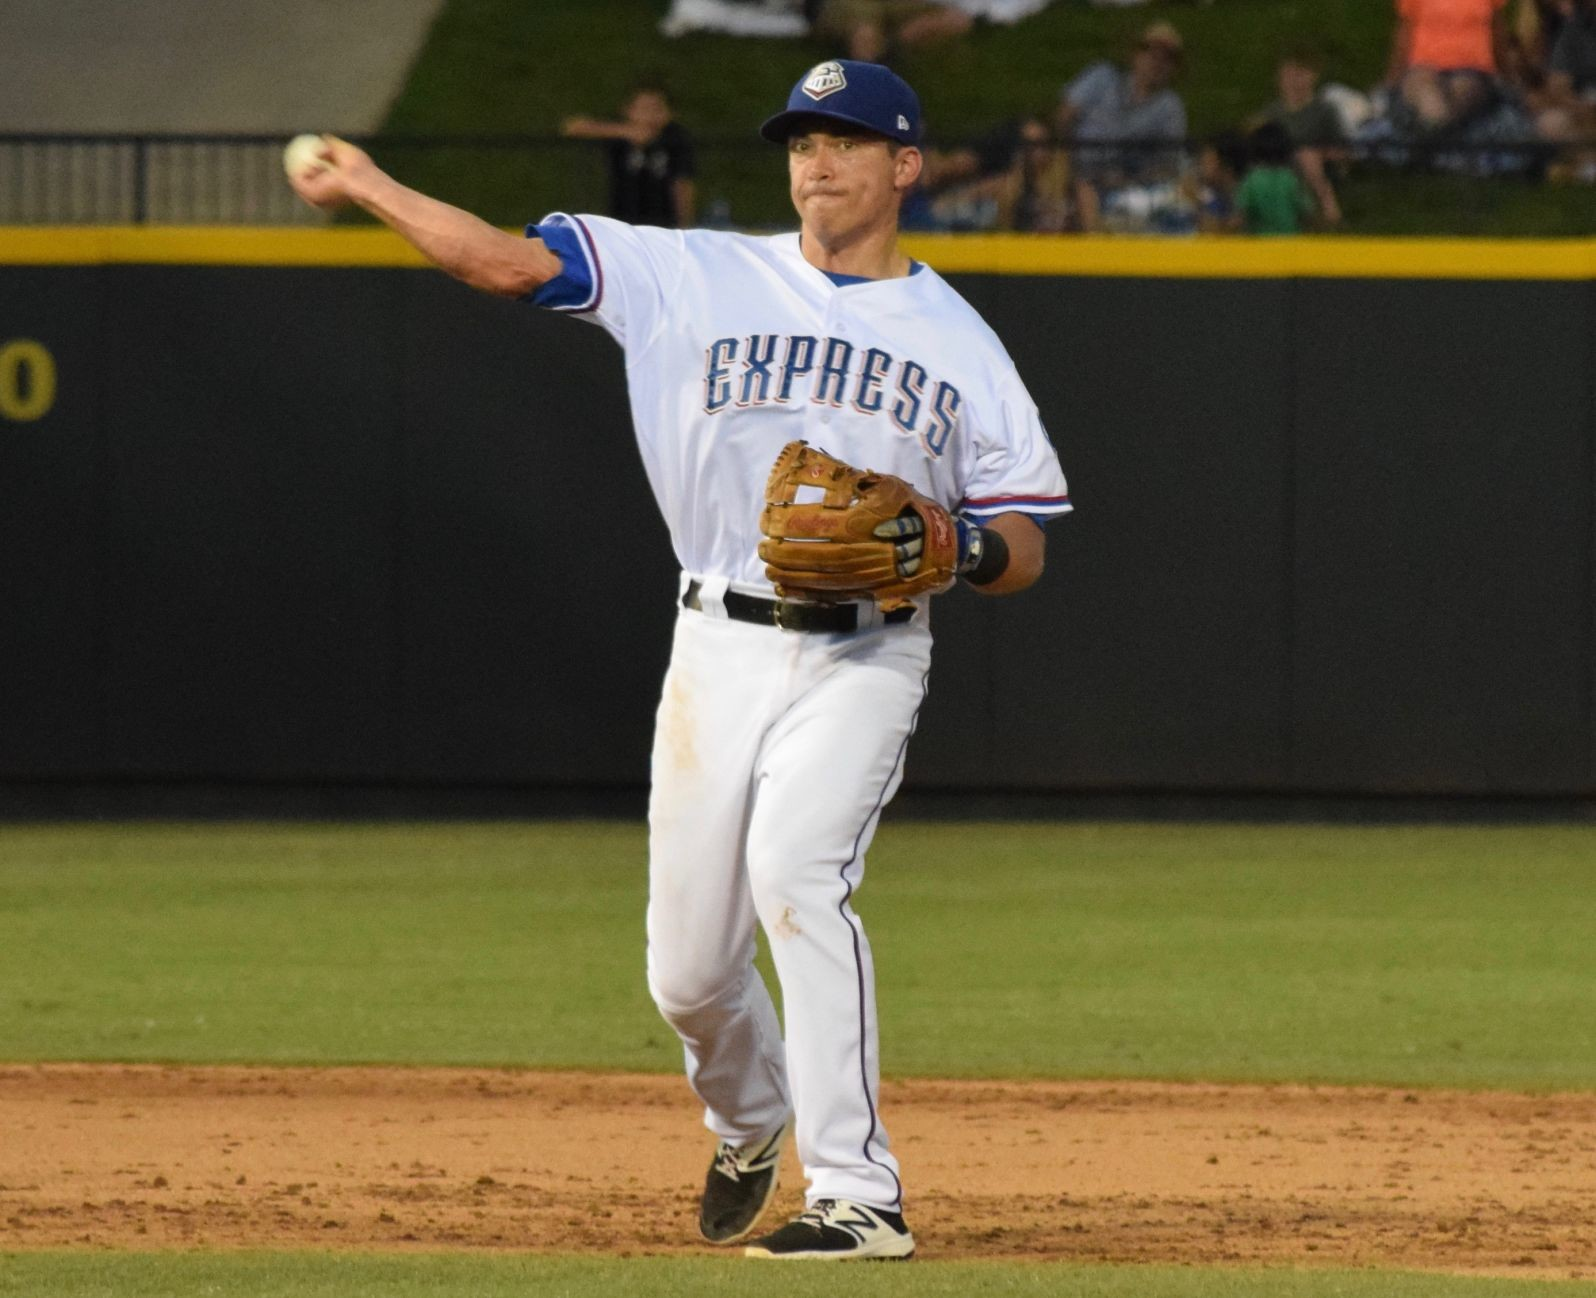 Doug Bernier made just his 10th appearance since May 1 and the Round Rock Express beat the New Orleans Baby Cakes 3-2 Thursday night.